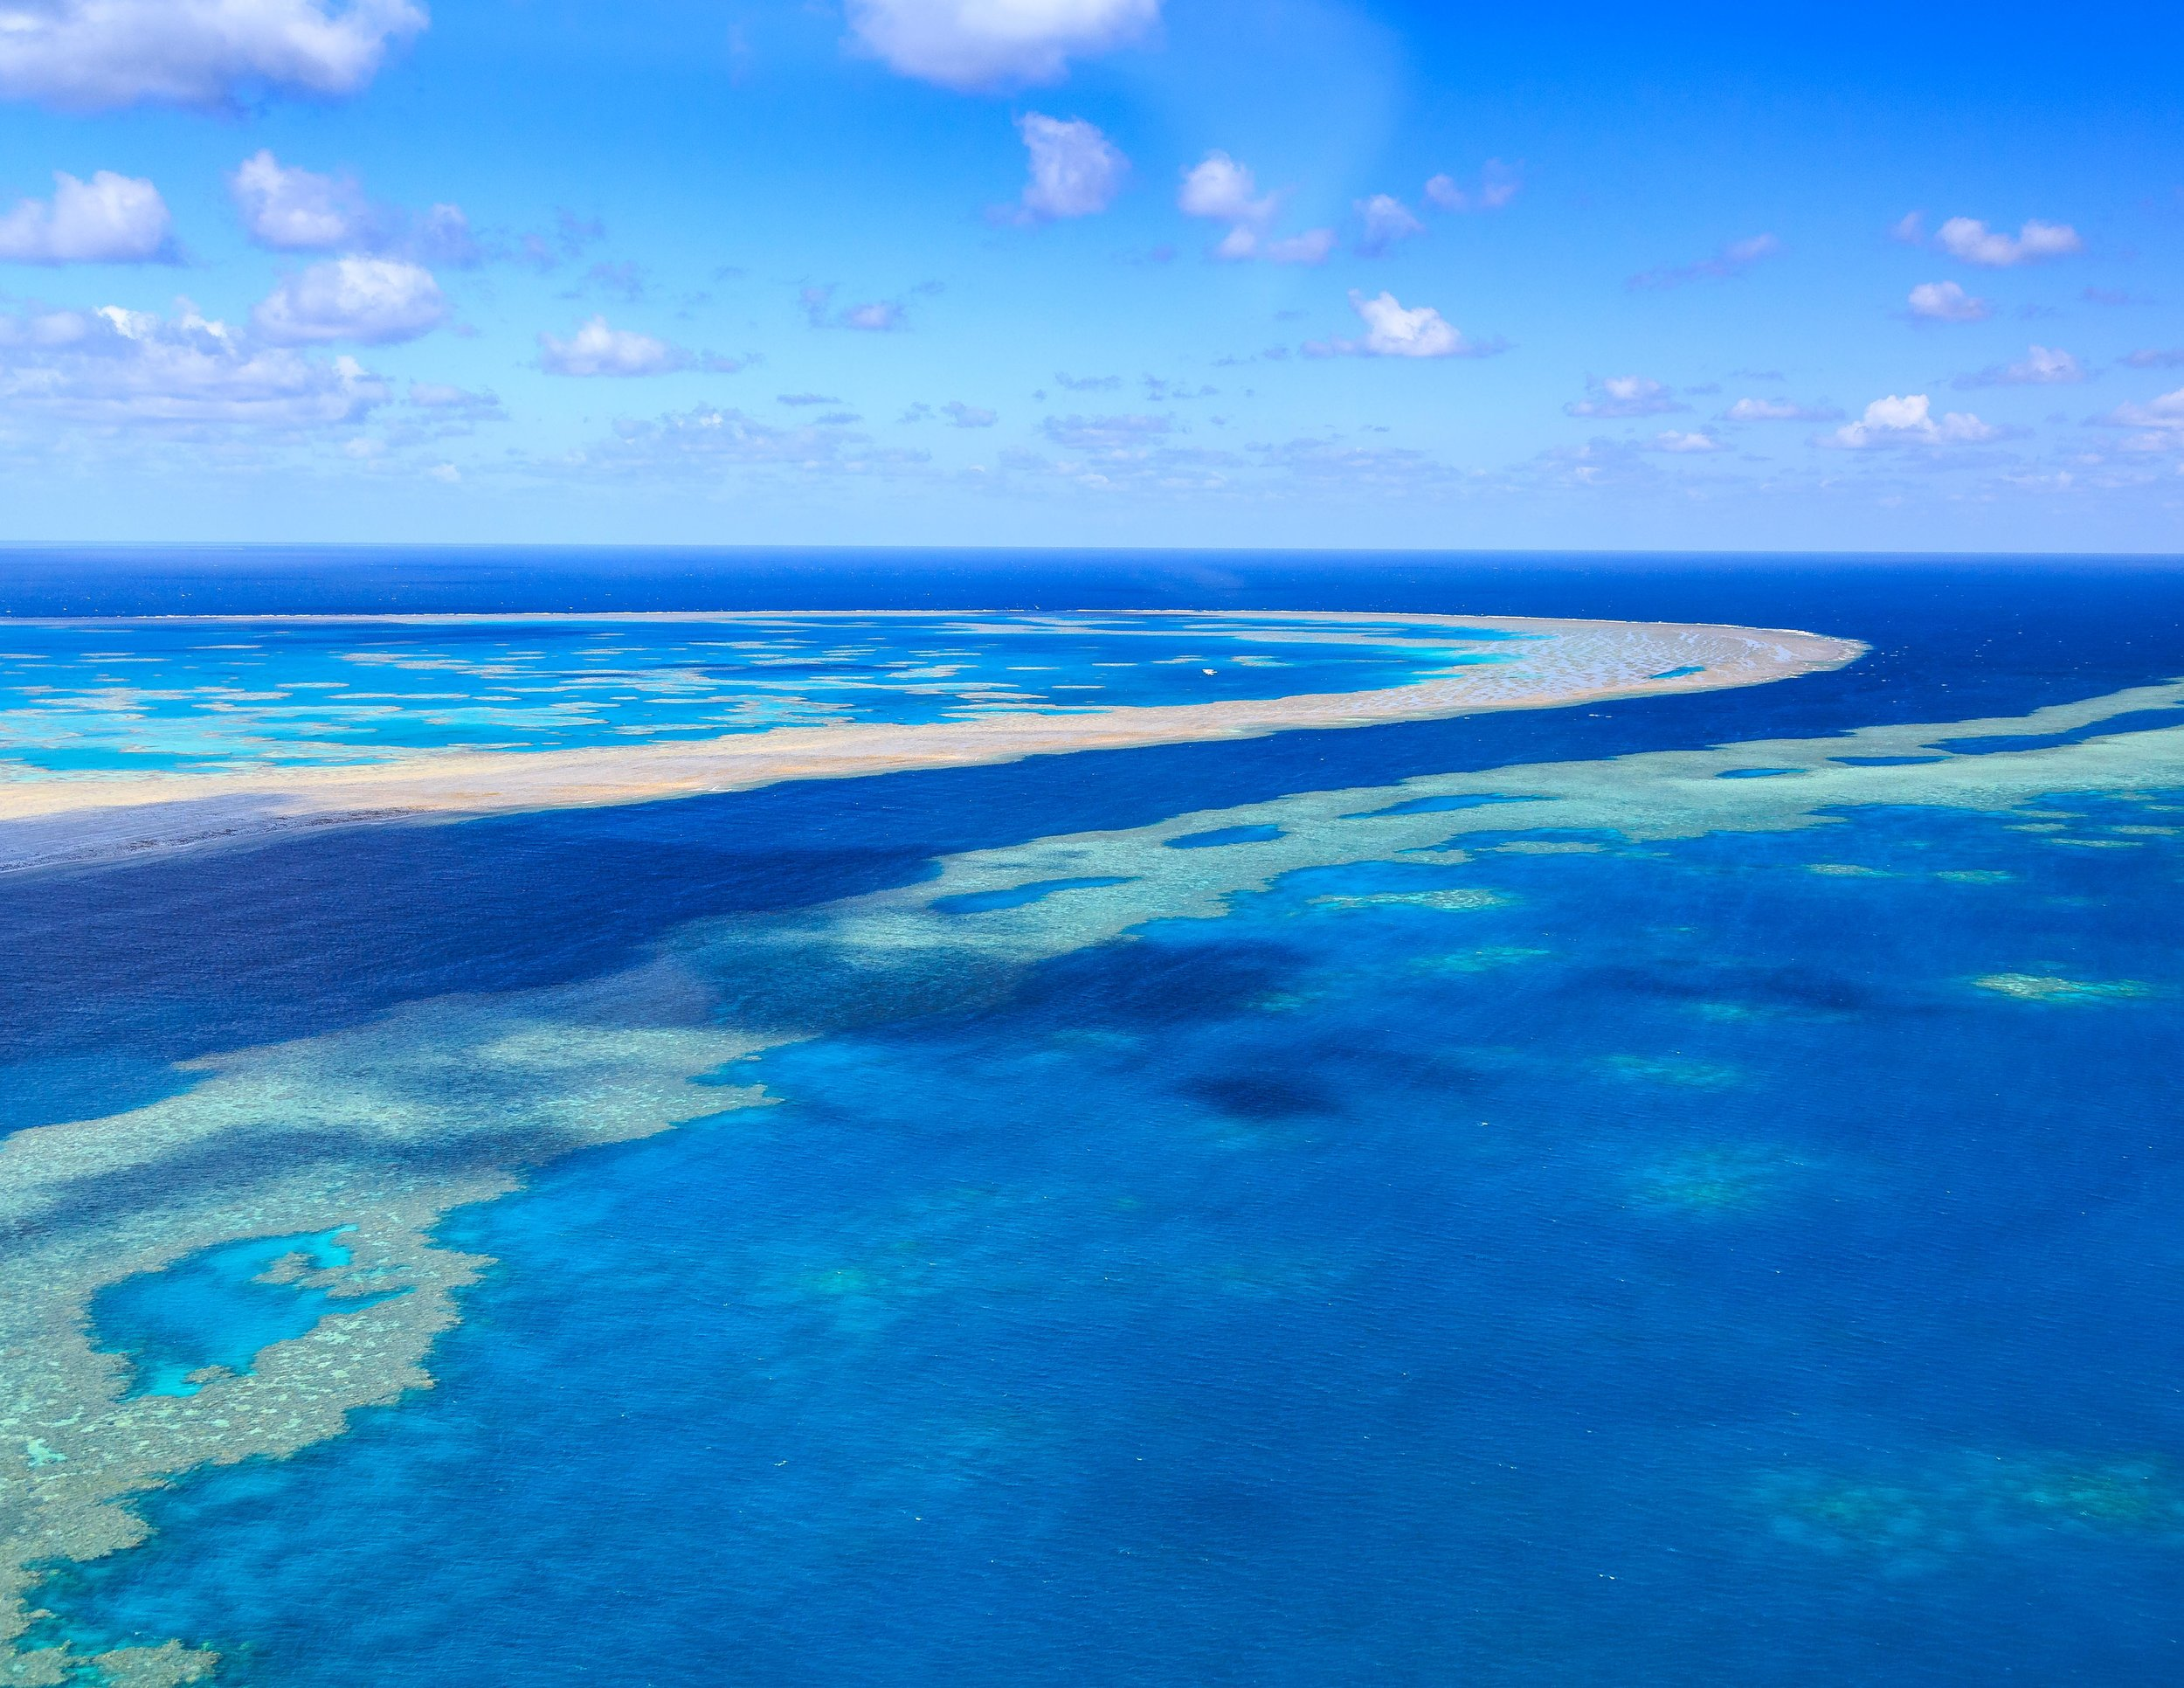 Must-see places in Australia: The Great Barrier Reef